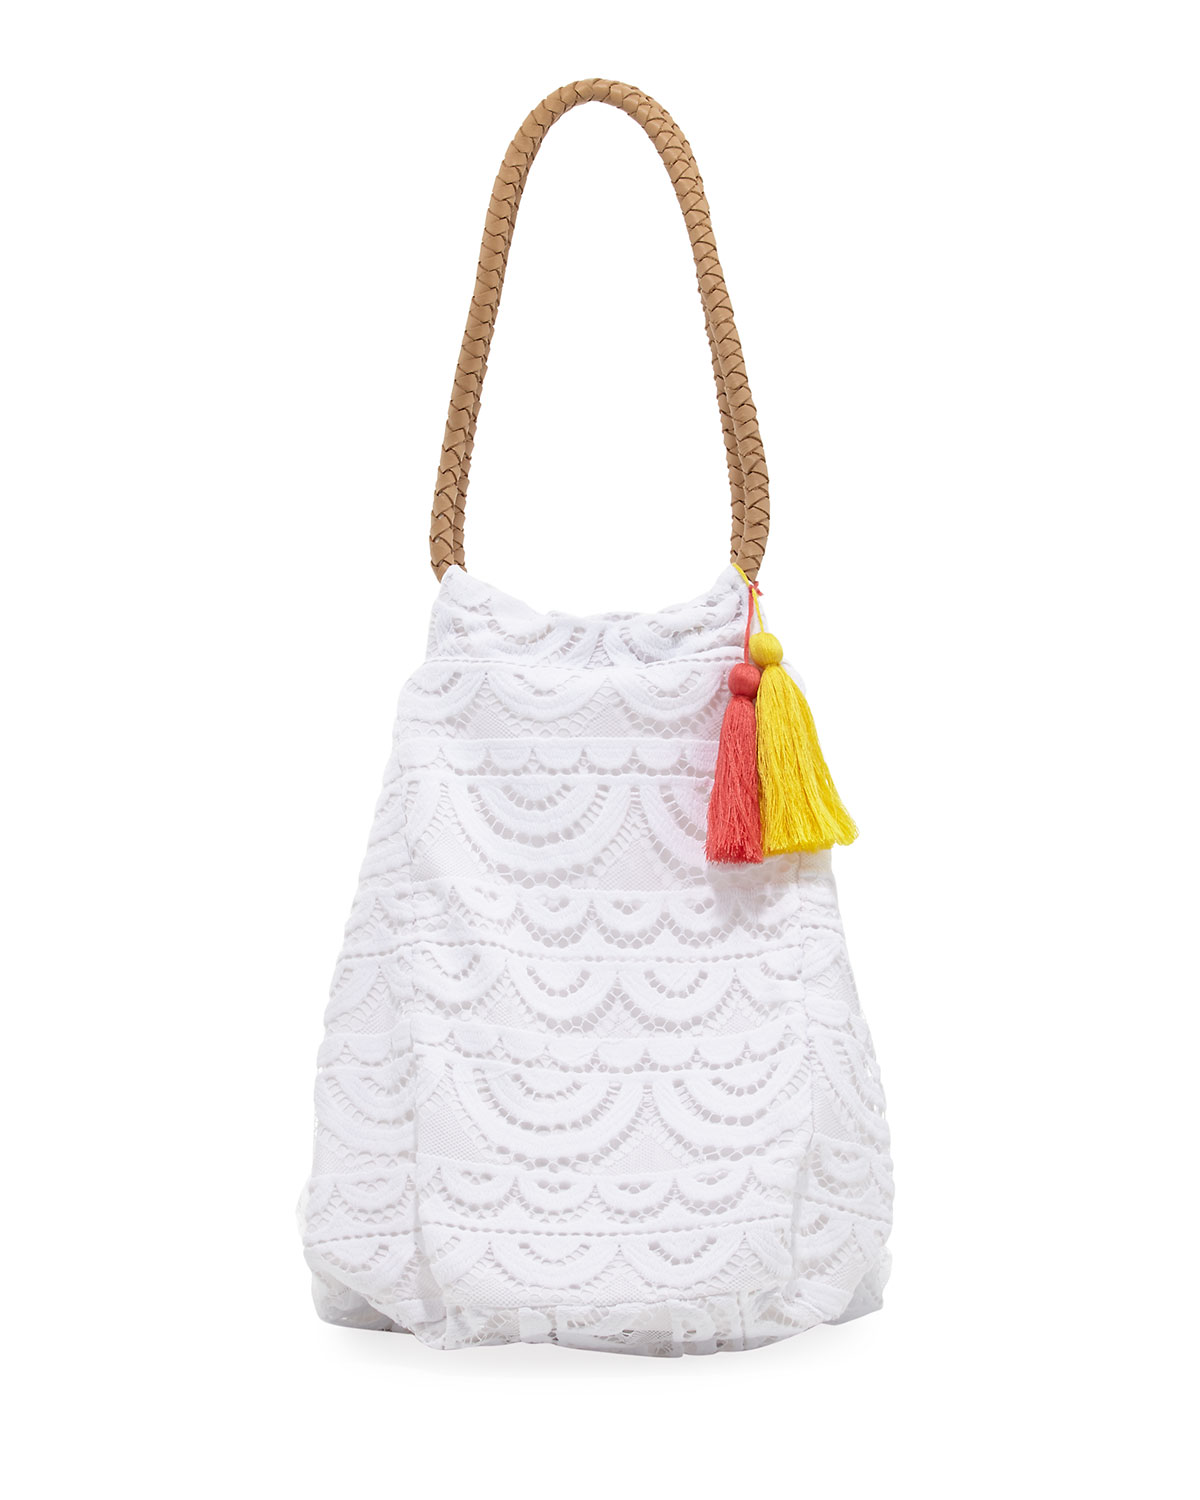 Allison Crocheted Lace Beach Tote Bag, White